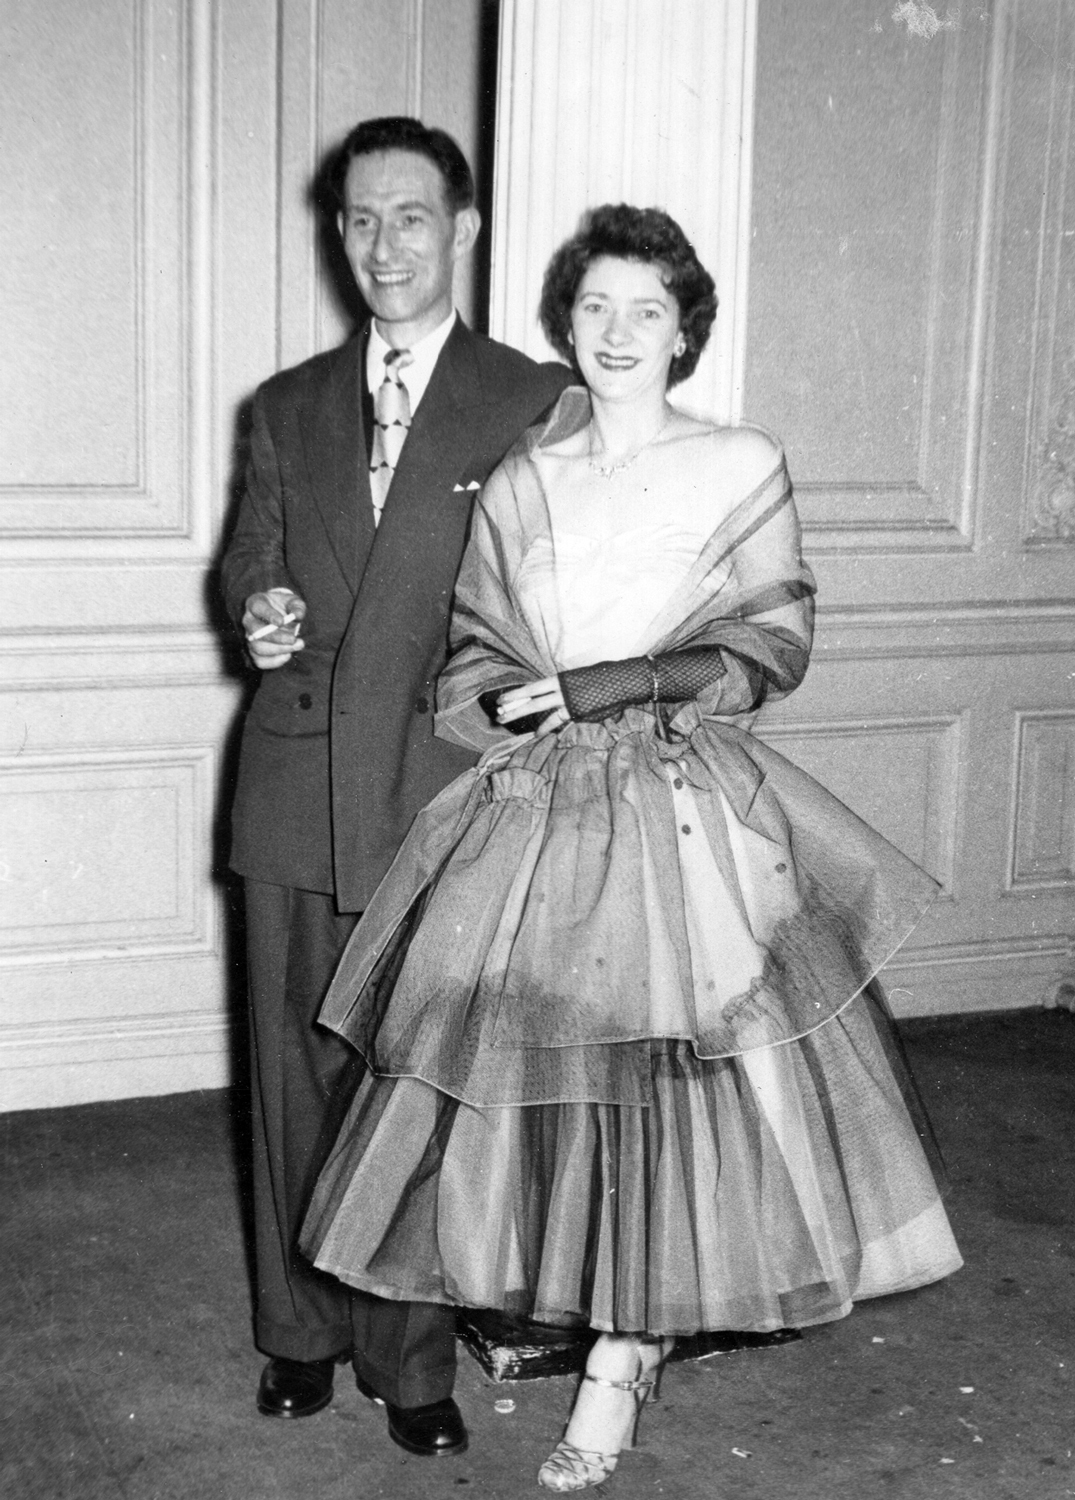 Couple Dressed Up On An Evening Out 1950s